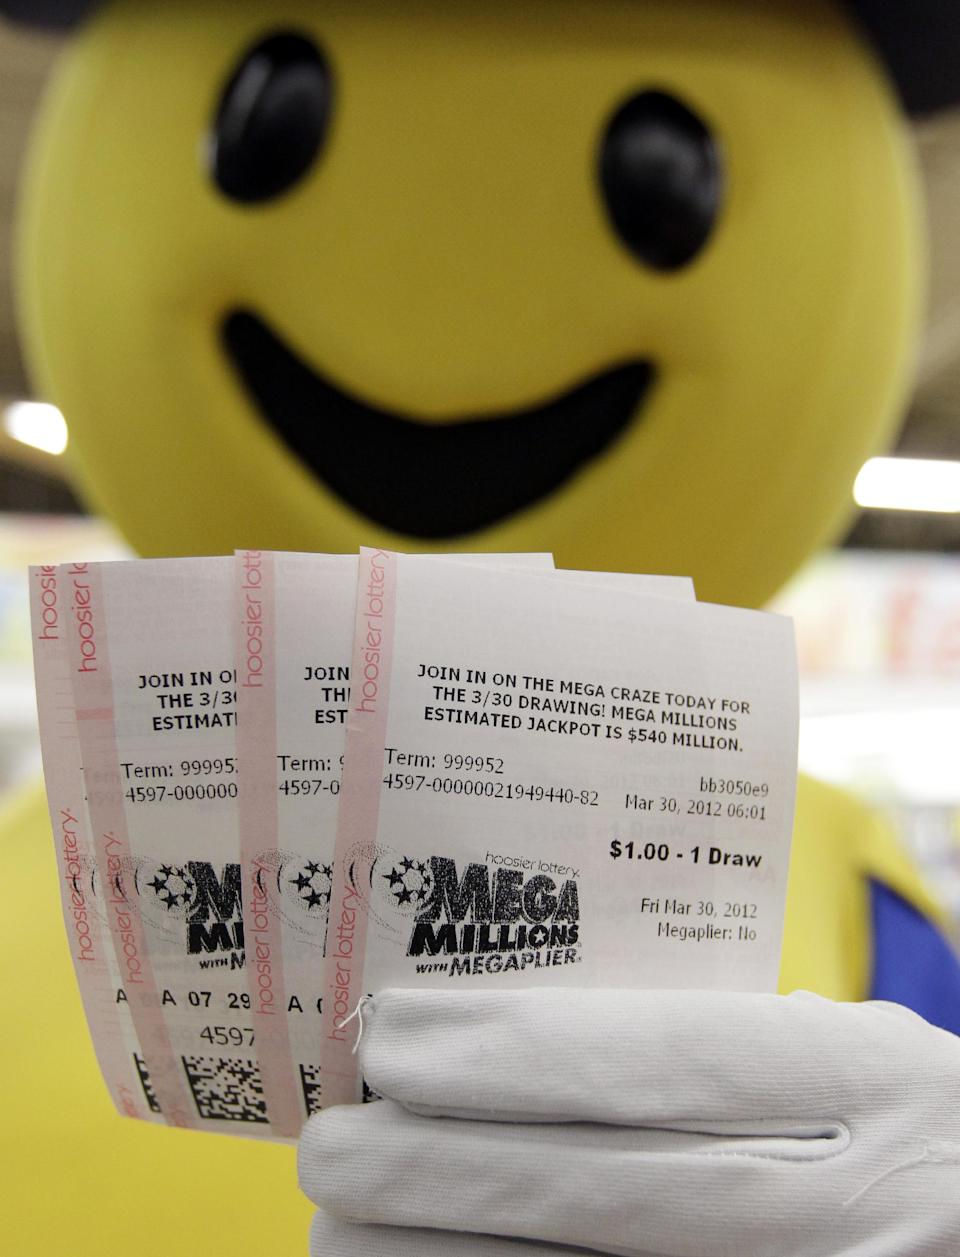 Mega Millions Lottery tickets that were given away to the first 540 people are displayed by the Hoosier Lottery's Mega Millions mascot at a store in Zionsville, Ind., Friday, March 30, 2012. The Mega Millions Lottery jackpot has reached more than $600 million. (AP Photo/Michael Conroy)